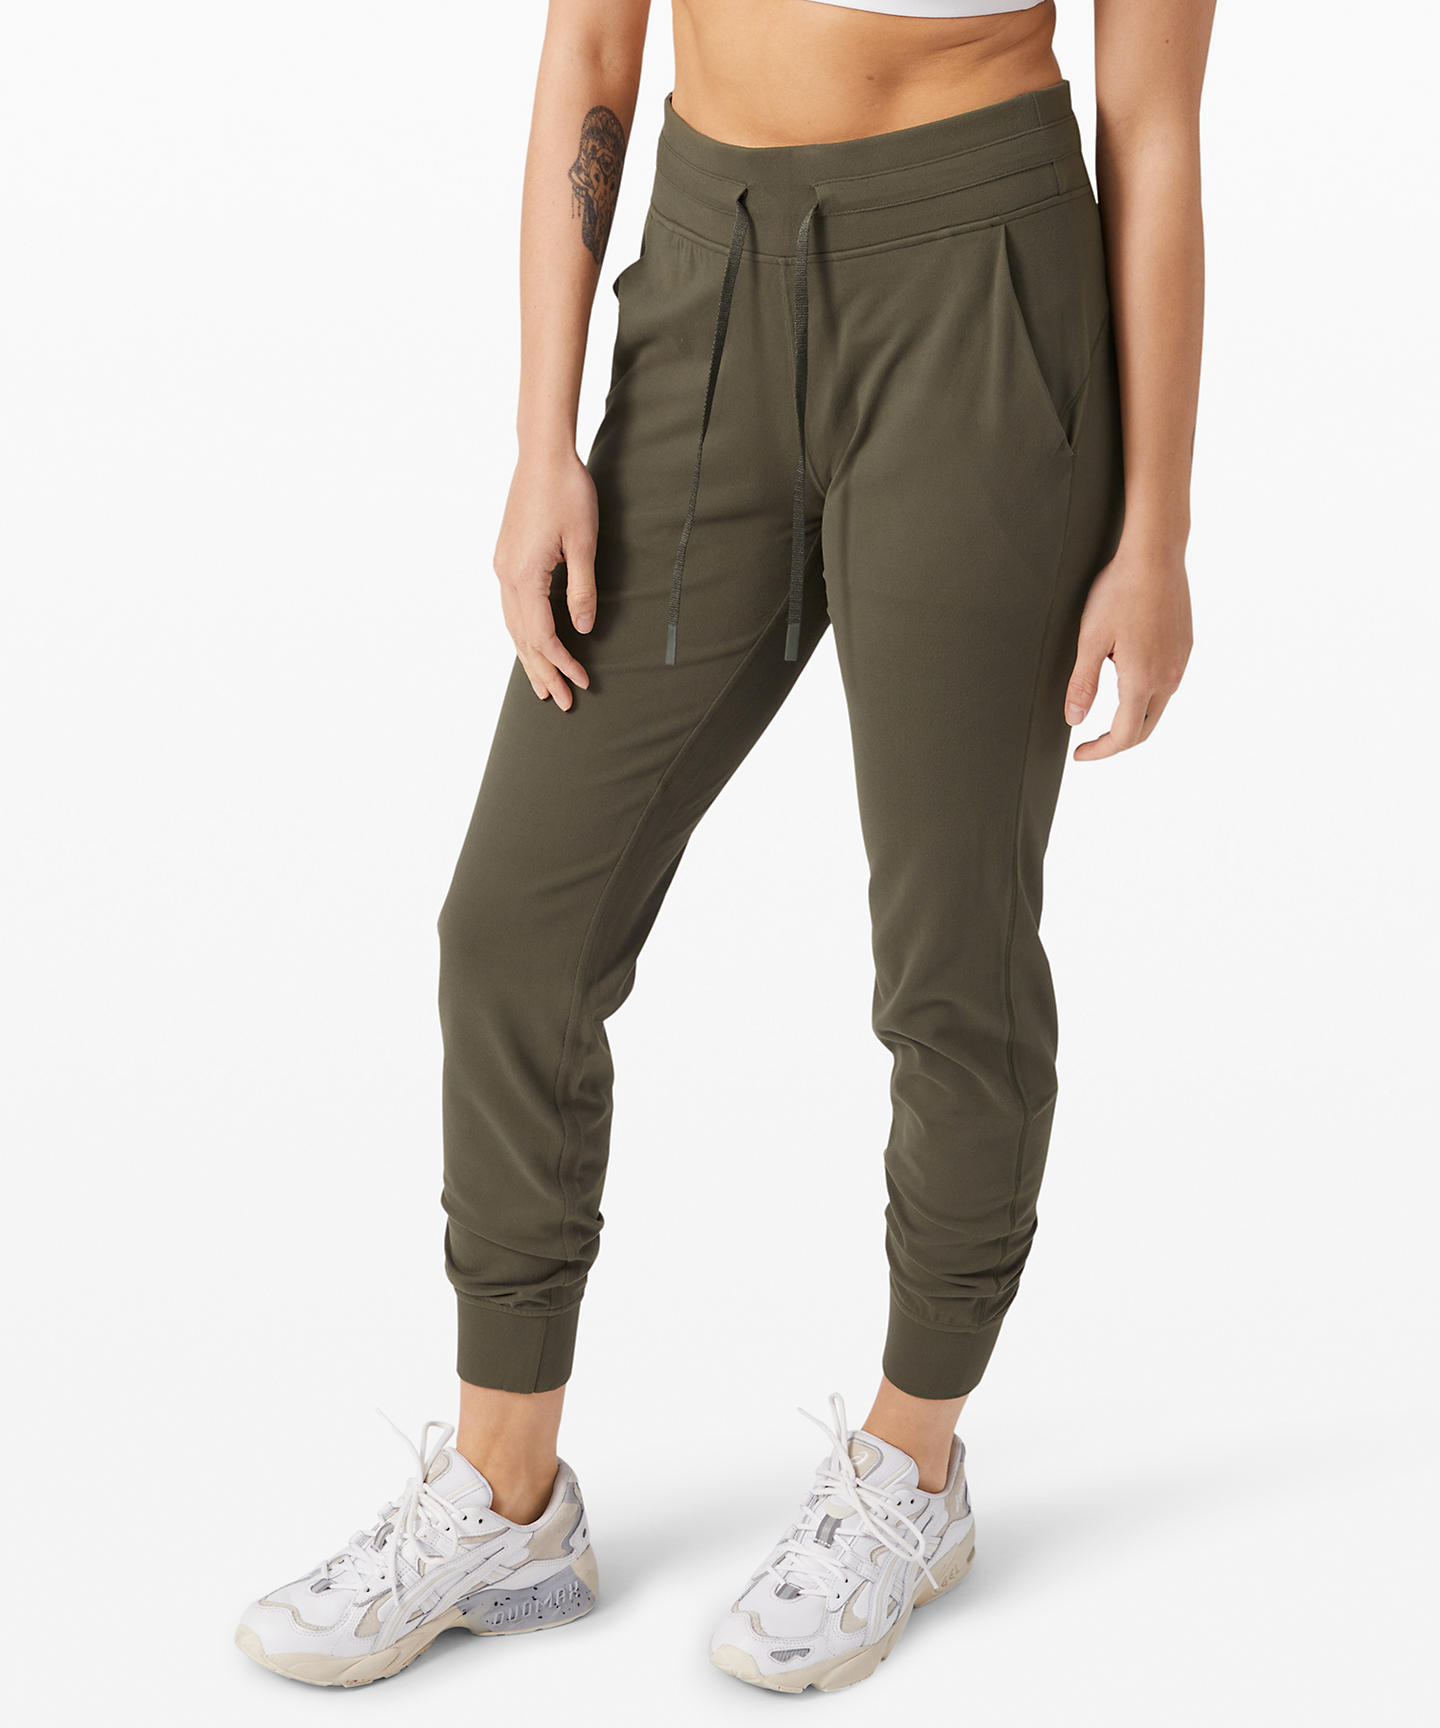 Ready To Rulu Pant, Lululemon Upload